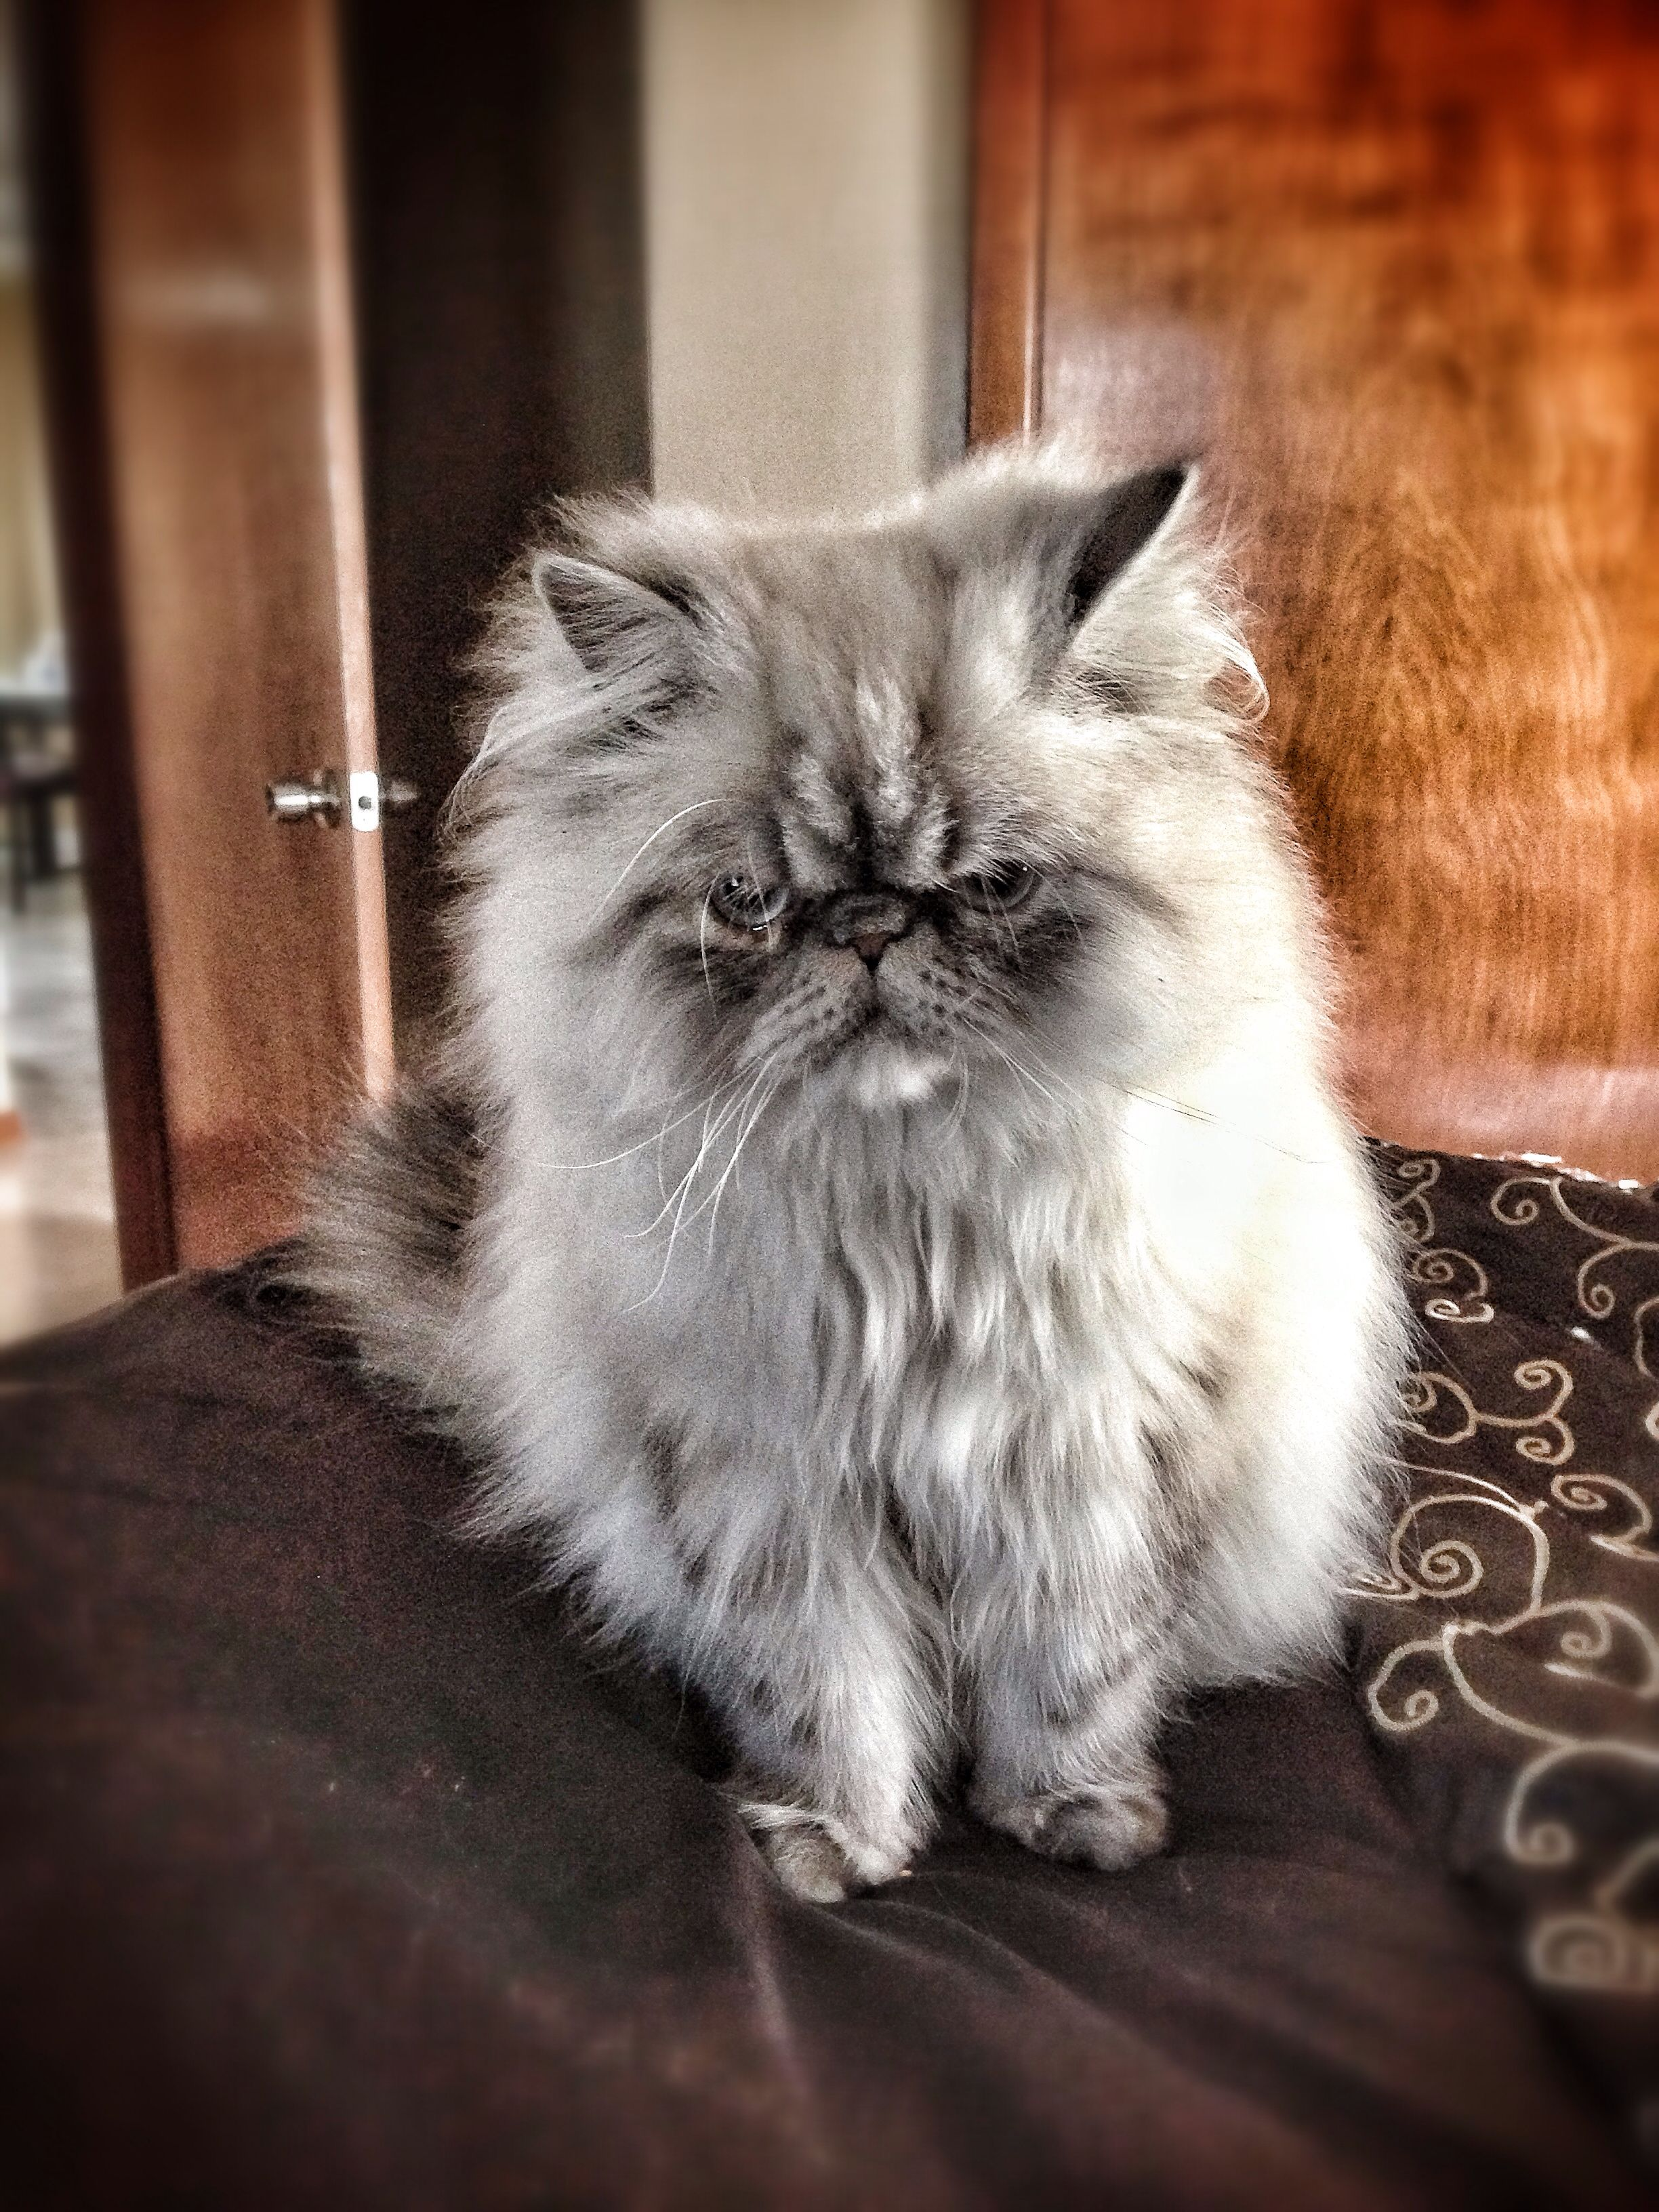 Honestly You Humans Drive Me Nuts Especially When You Run Out Of Treats Announced An Angry Kitty Cat Cute Cats And Kittens Persian Cat Pretty Cats